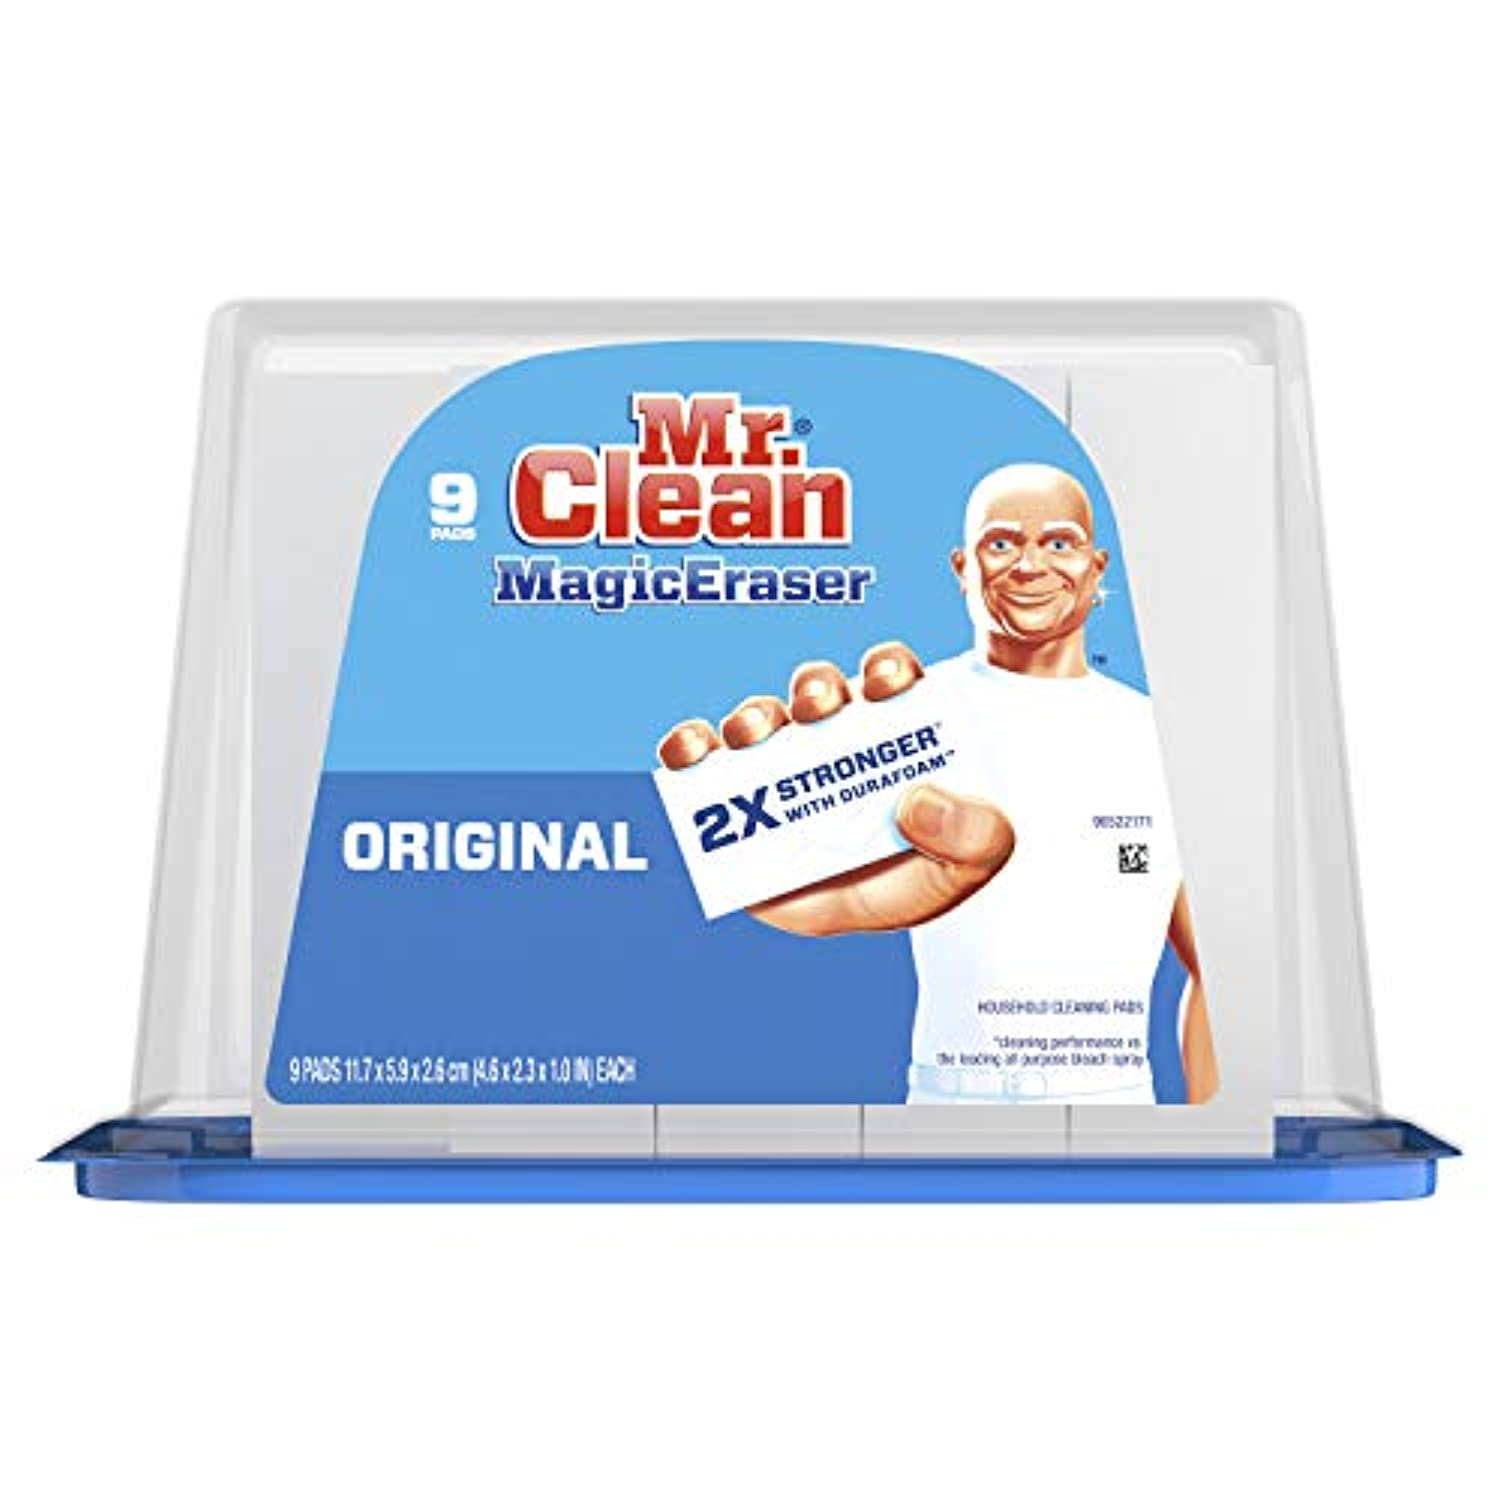 Classier: Buy Mr. Clean Mr. Clean Magic Eraser Original, Cleaning Pads with Durafoam, 9 Count